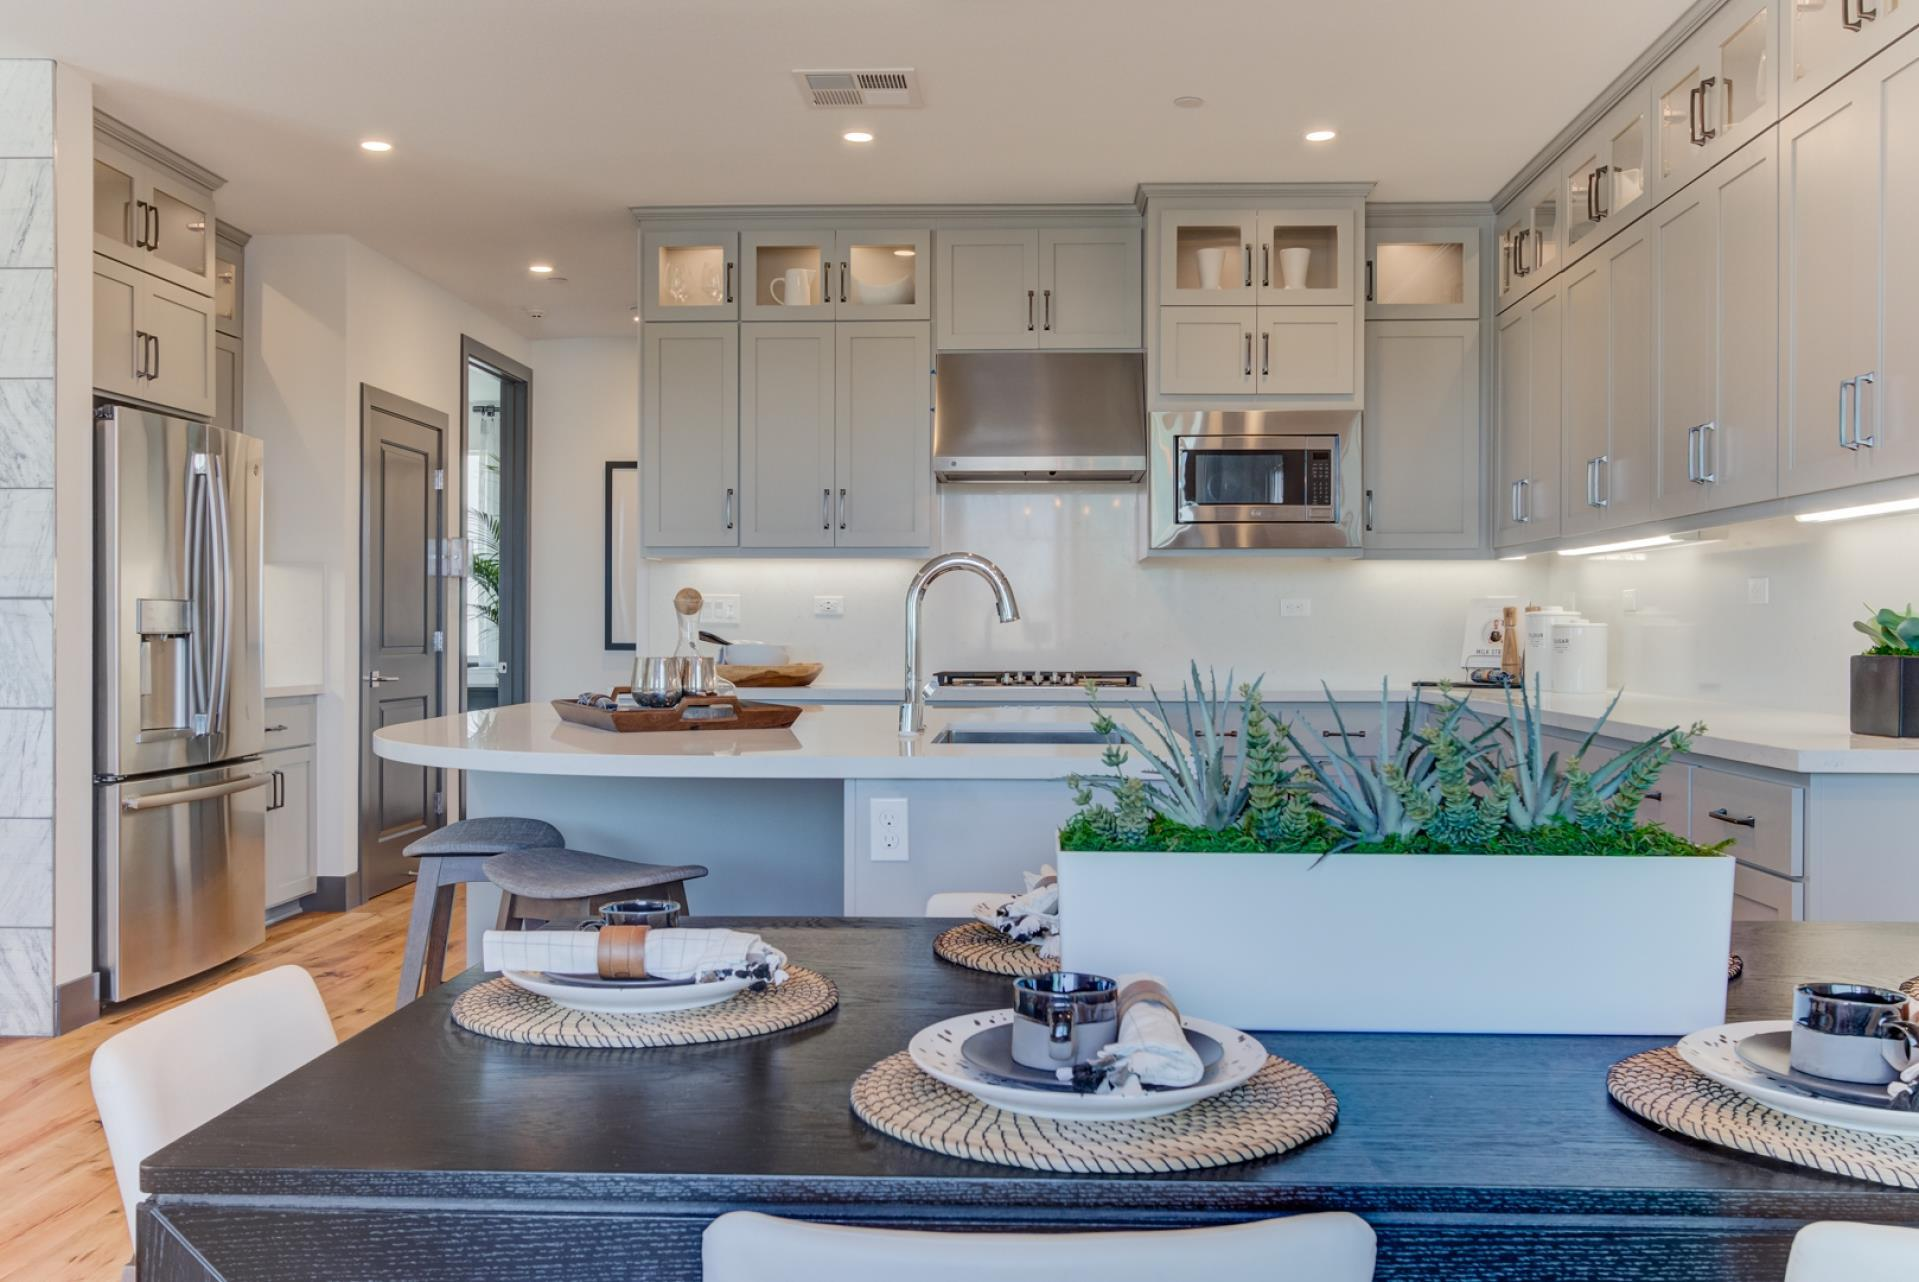 Kitchen featured in the Terraces Plan 2 By SummerHill Homes in San Jose, CA